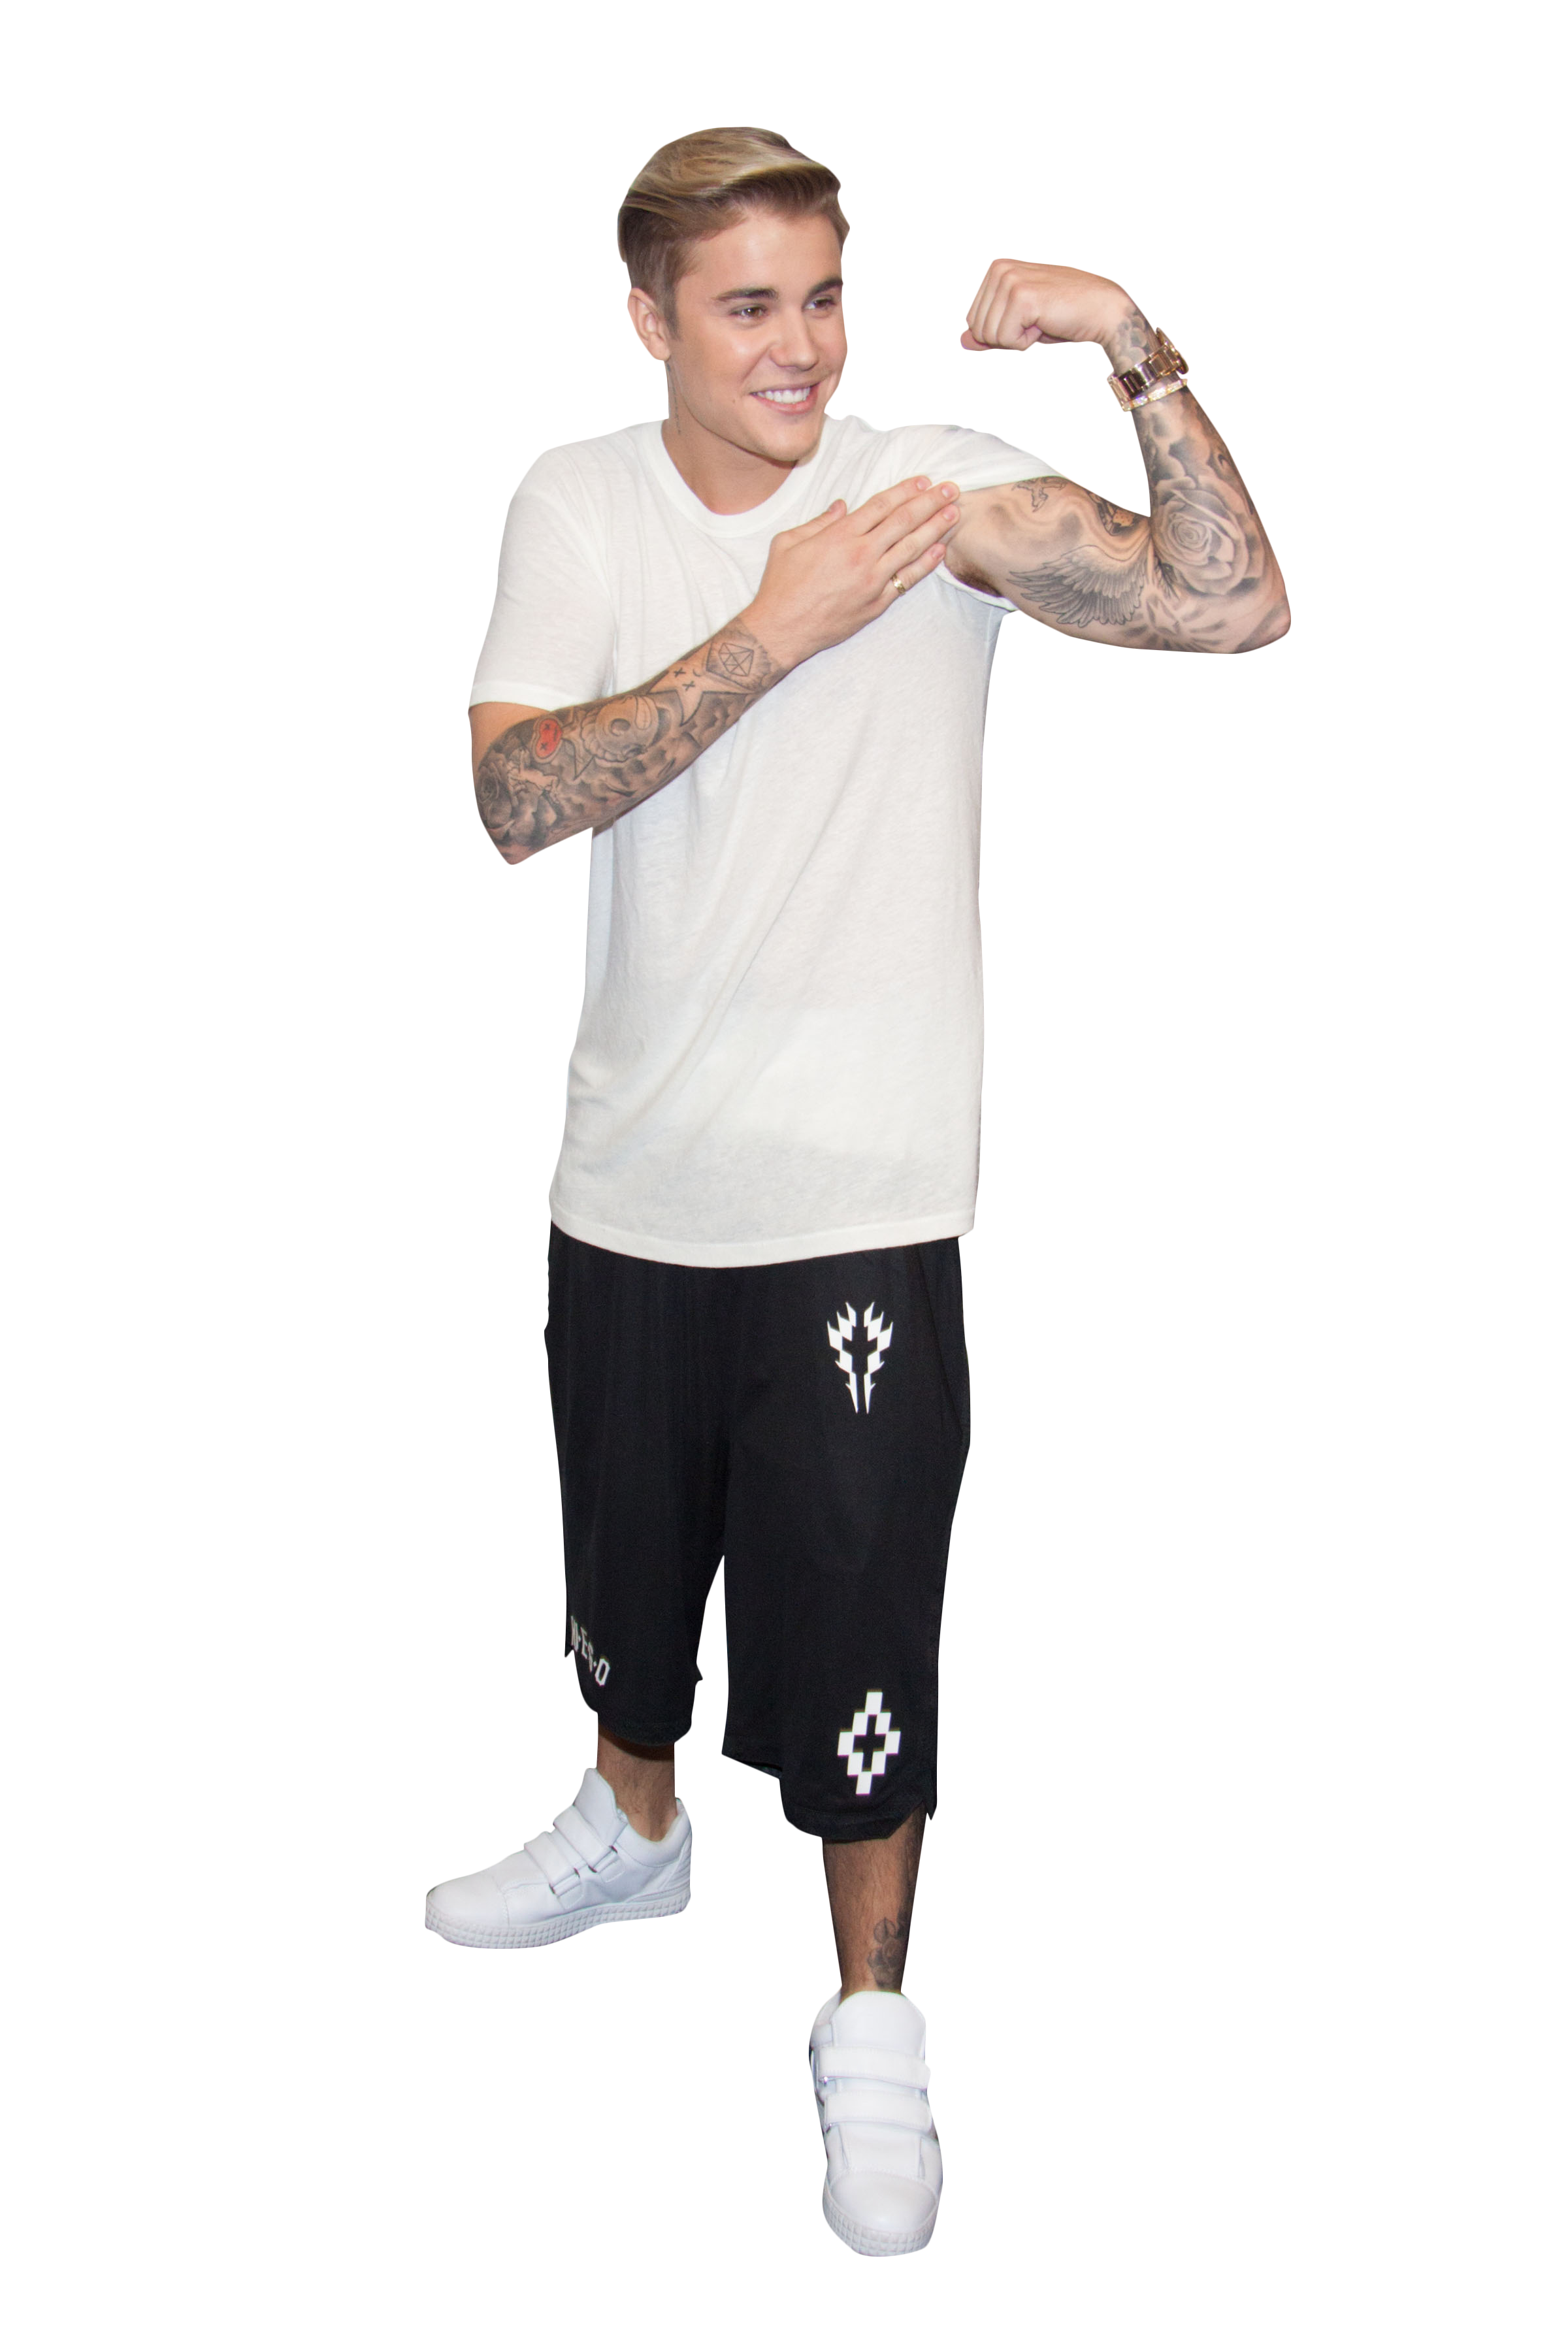 Justin Bieber Showing Muscle PNG Image